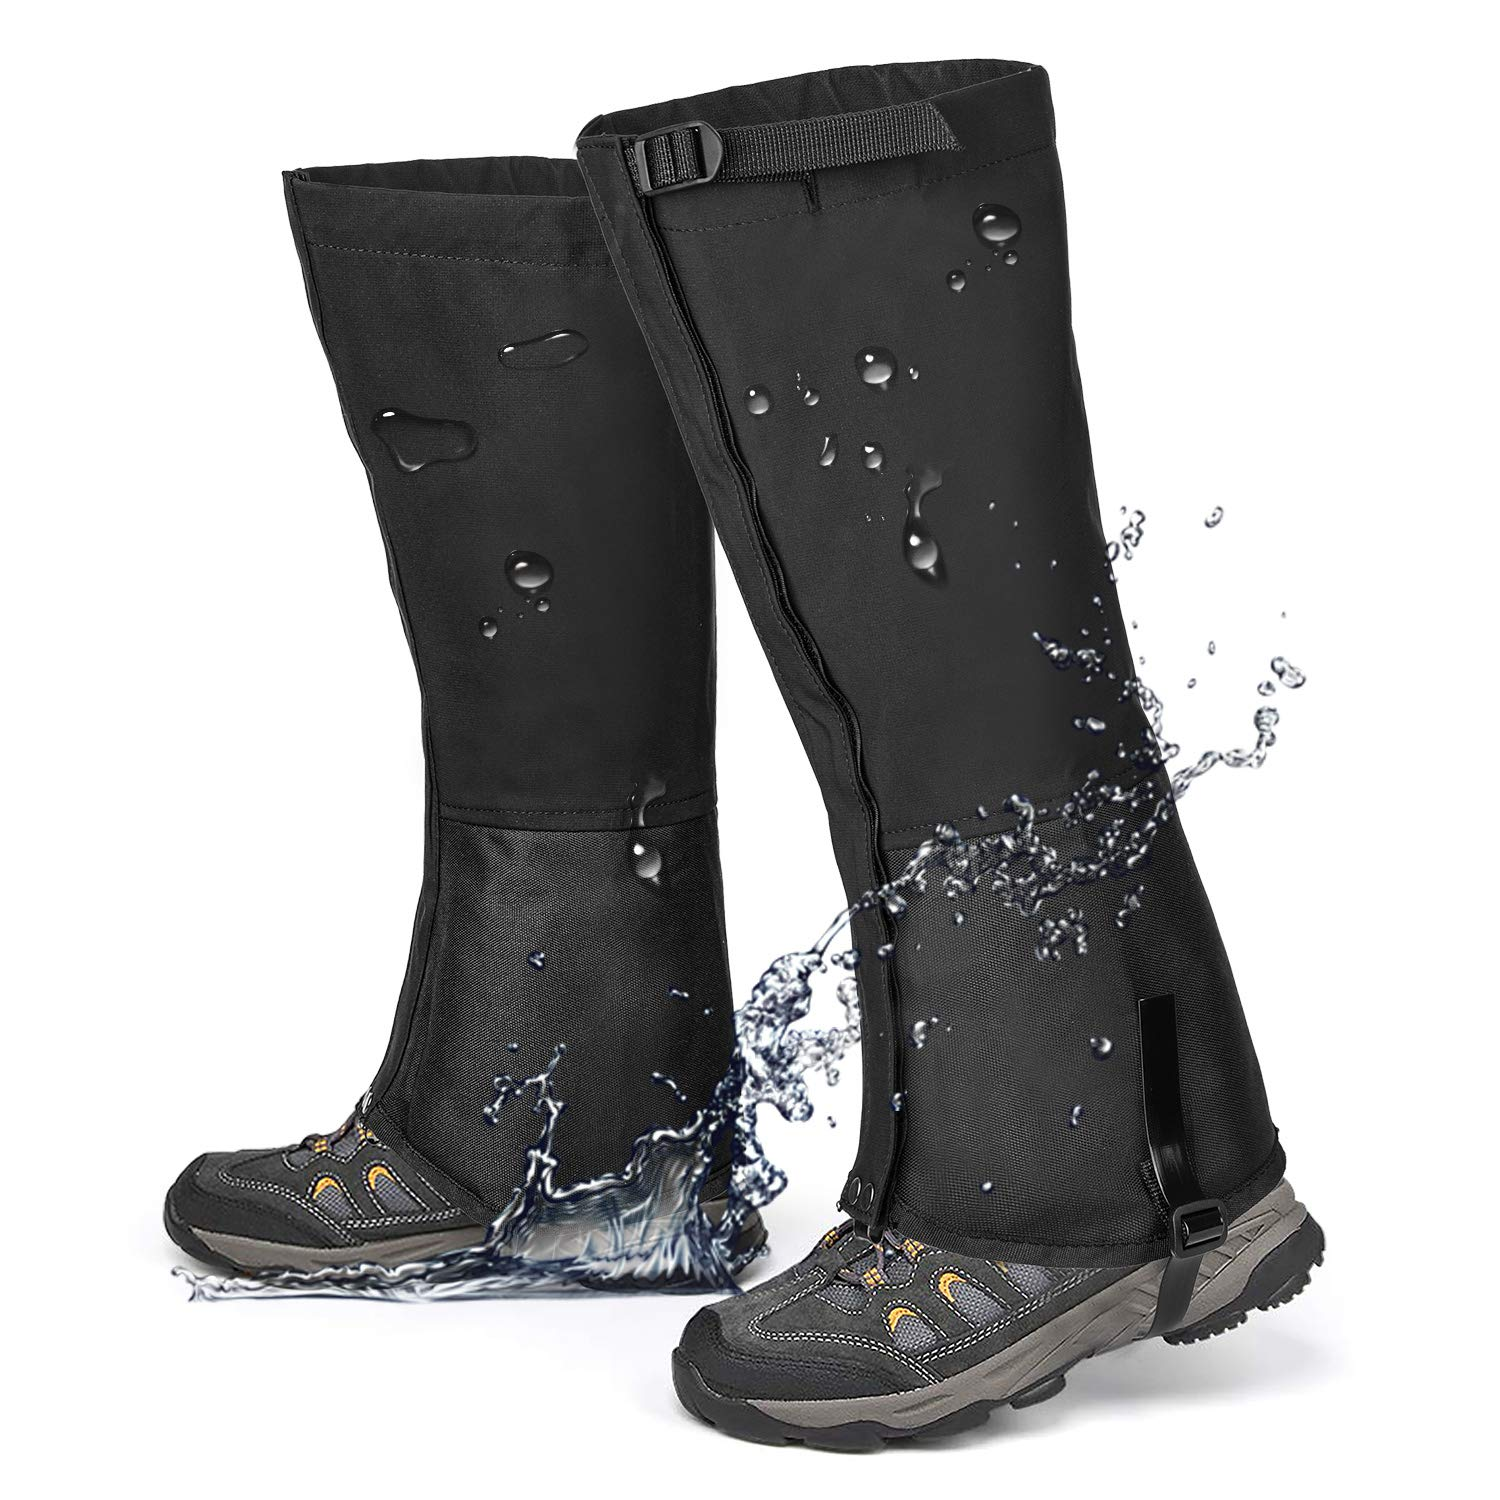 Leg Gaiters Waterproof Snow Boot Gaiters for Snowshoeing, Hiking, Hunting, Running, Motorcycle Anti-Tear Oxford Fabric, TPU Instep Belt Metal Shoelace Hook Adjustable top Buckle Strap for Outdoor by QTECLOR